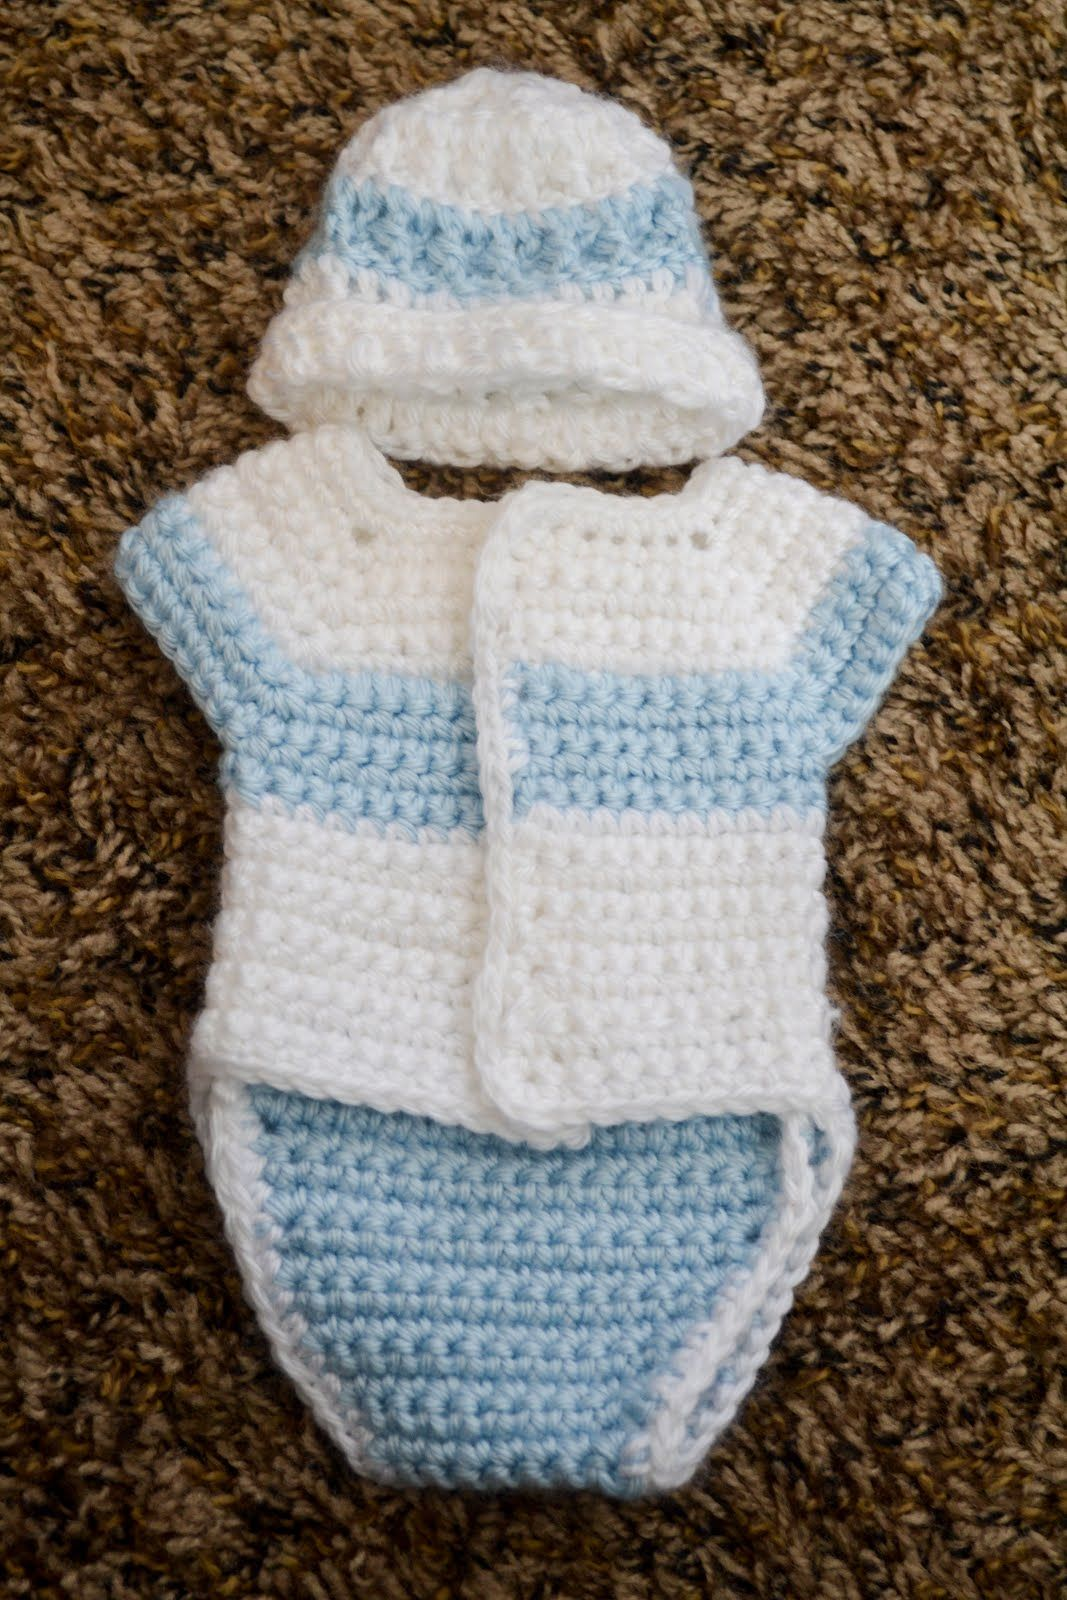 Crochet baby clothes. Love you more than a bus: More patterns ...